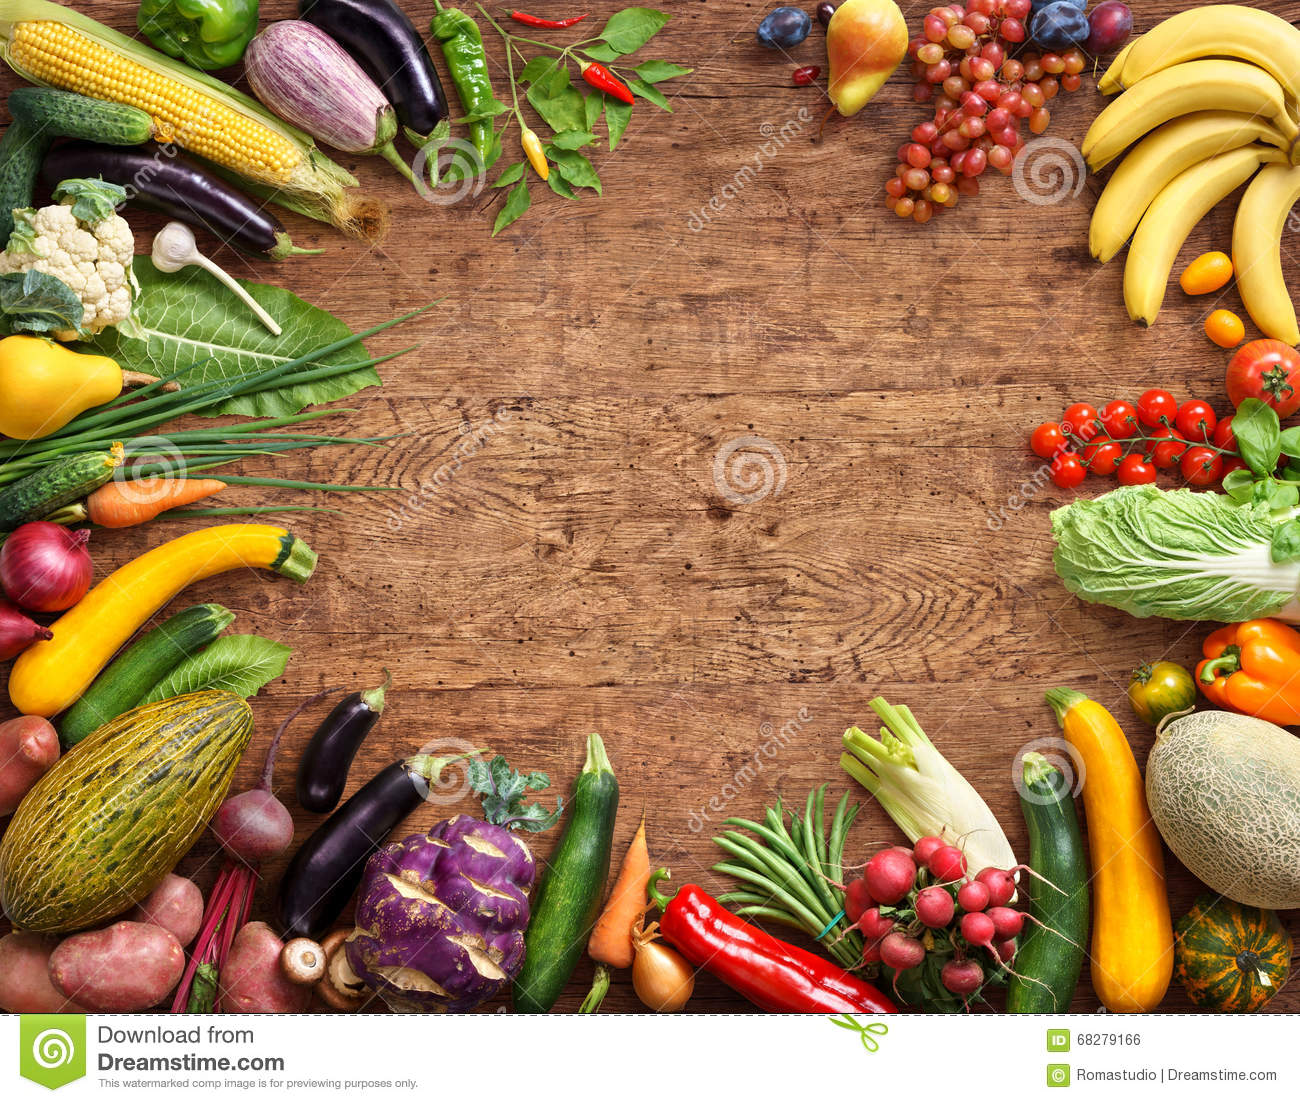 Healthy eating background. Studio photo of different fruits and vegetables